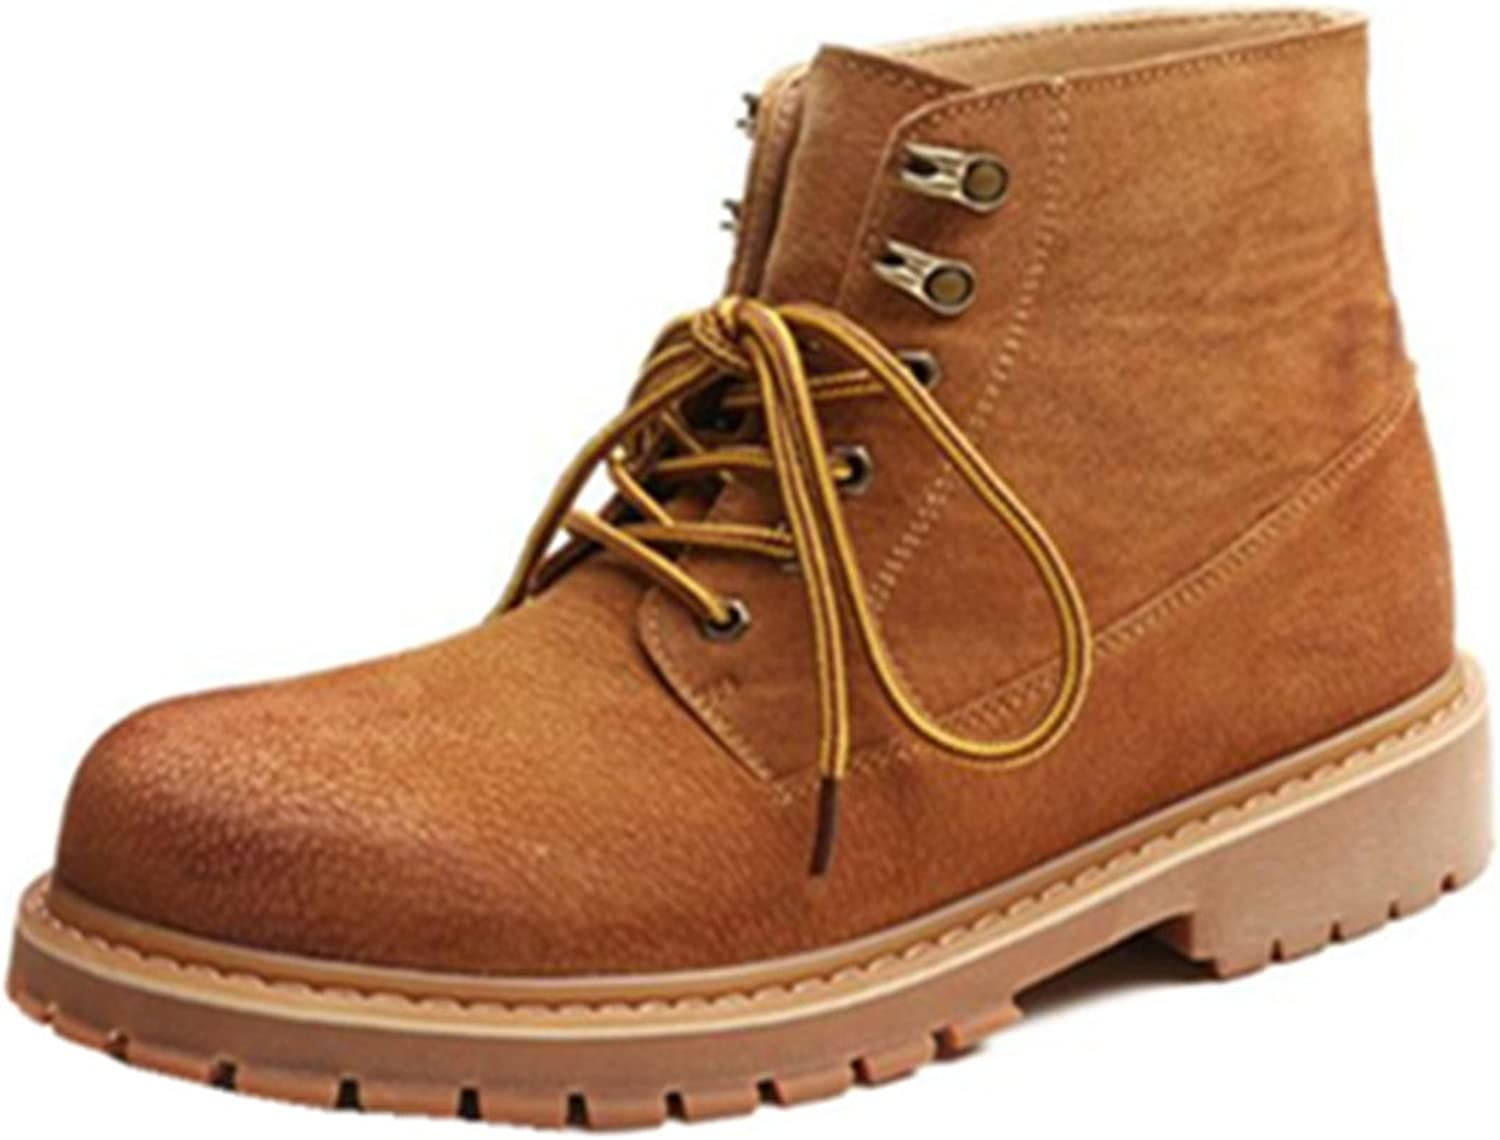 HAPPYSHOP TM Men's Real Leather High Work Boots Winter Desert Boot Chukka Boots